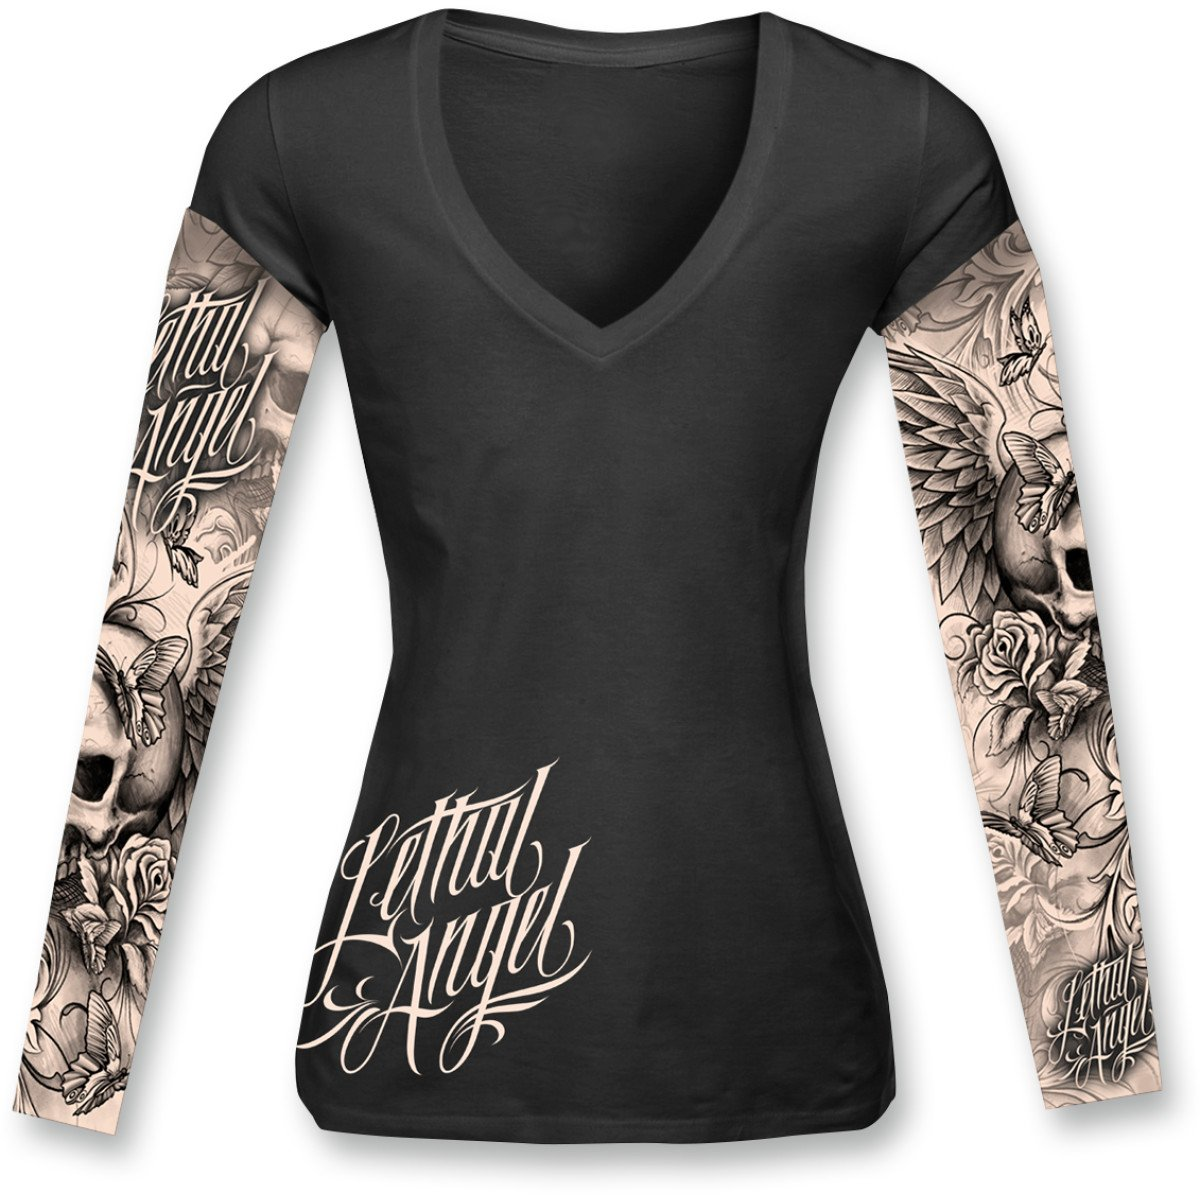 Lethal Threat LT20284XXL Women's Long Sleeve Shirt (Skulls N Tattoos Ls)(Black, XX-Large), 1 Pack by Lethal Threat Designs (Image #1)